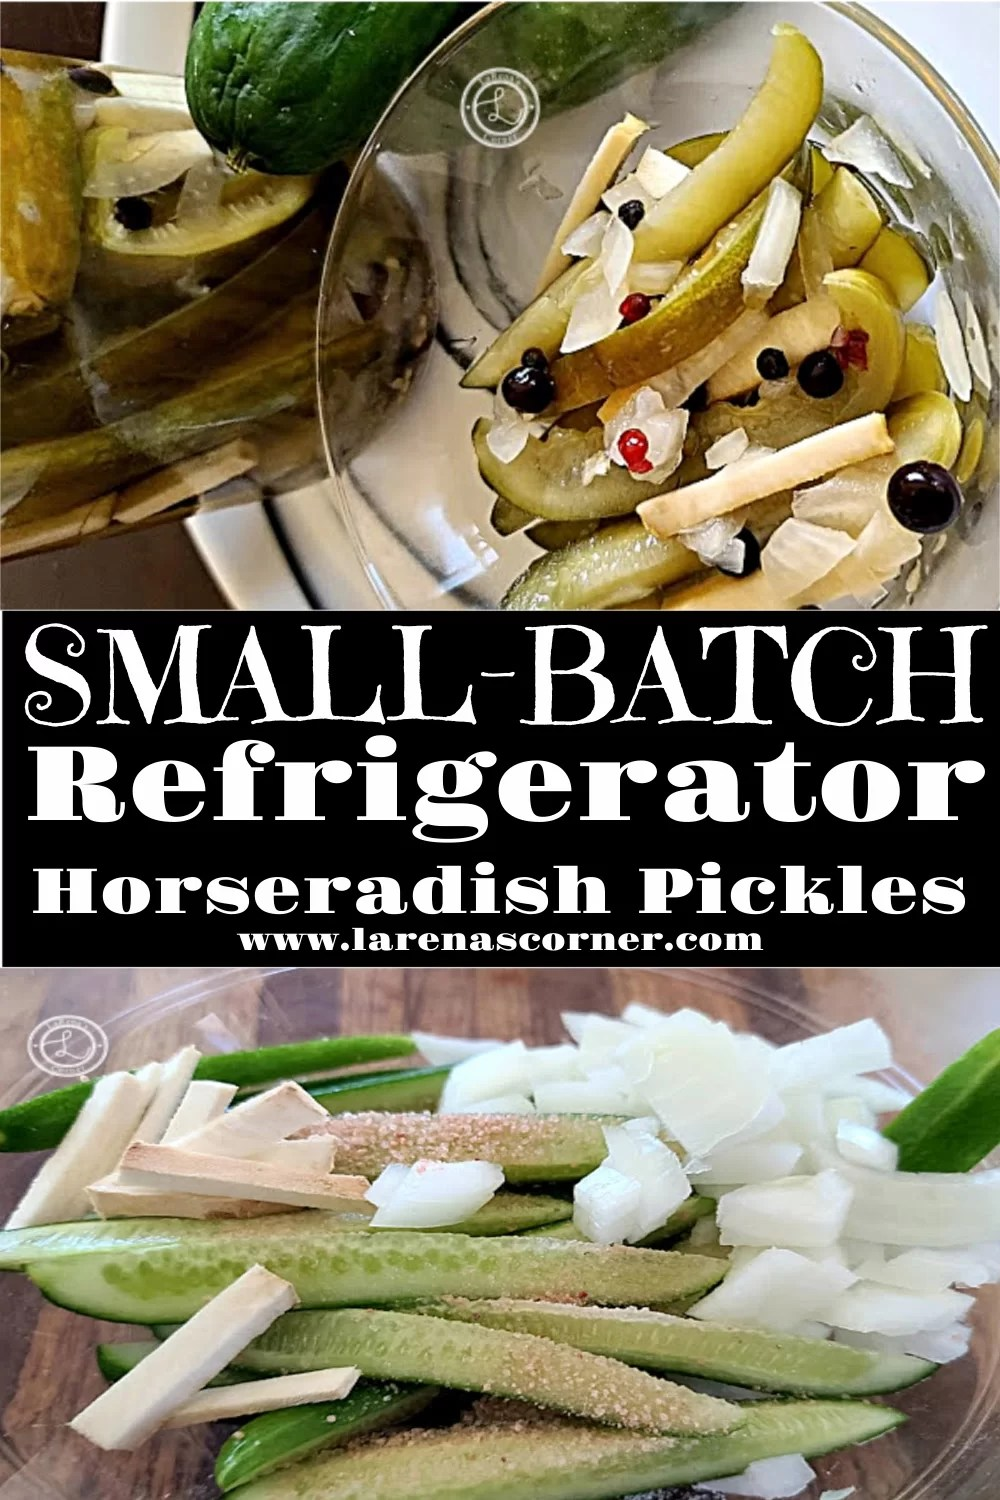 Two pictures of Small Batch Refrigerator Horseradish Pickles. One before pickling and one after.